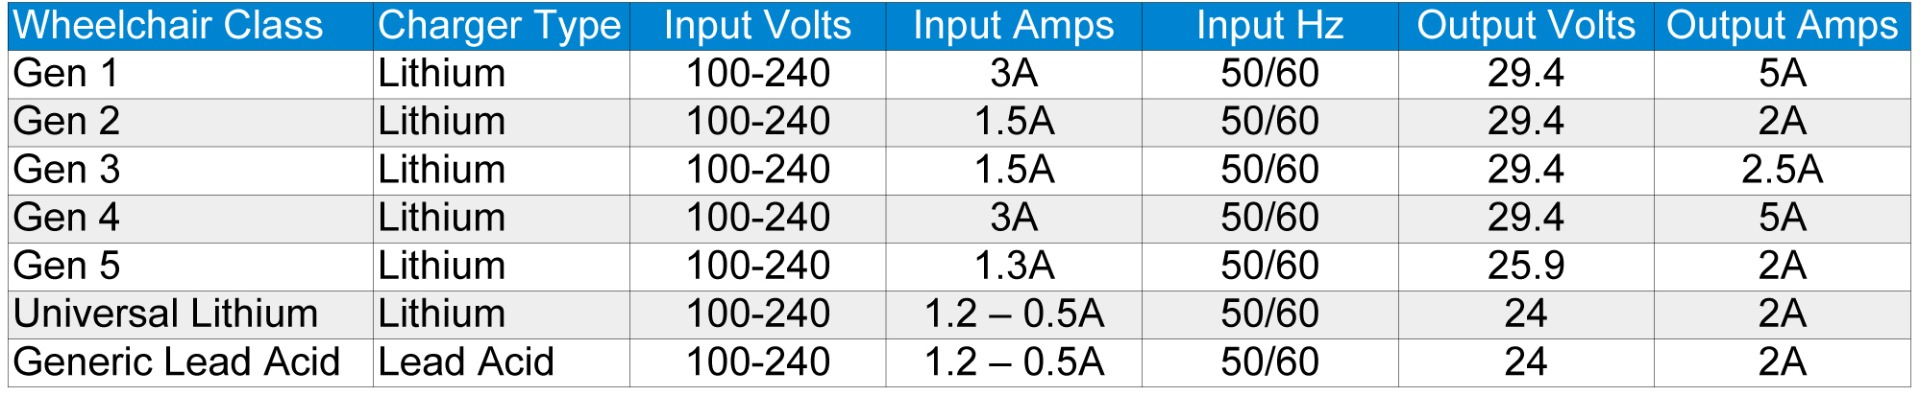 Battery Charger Specs